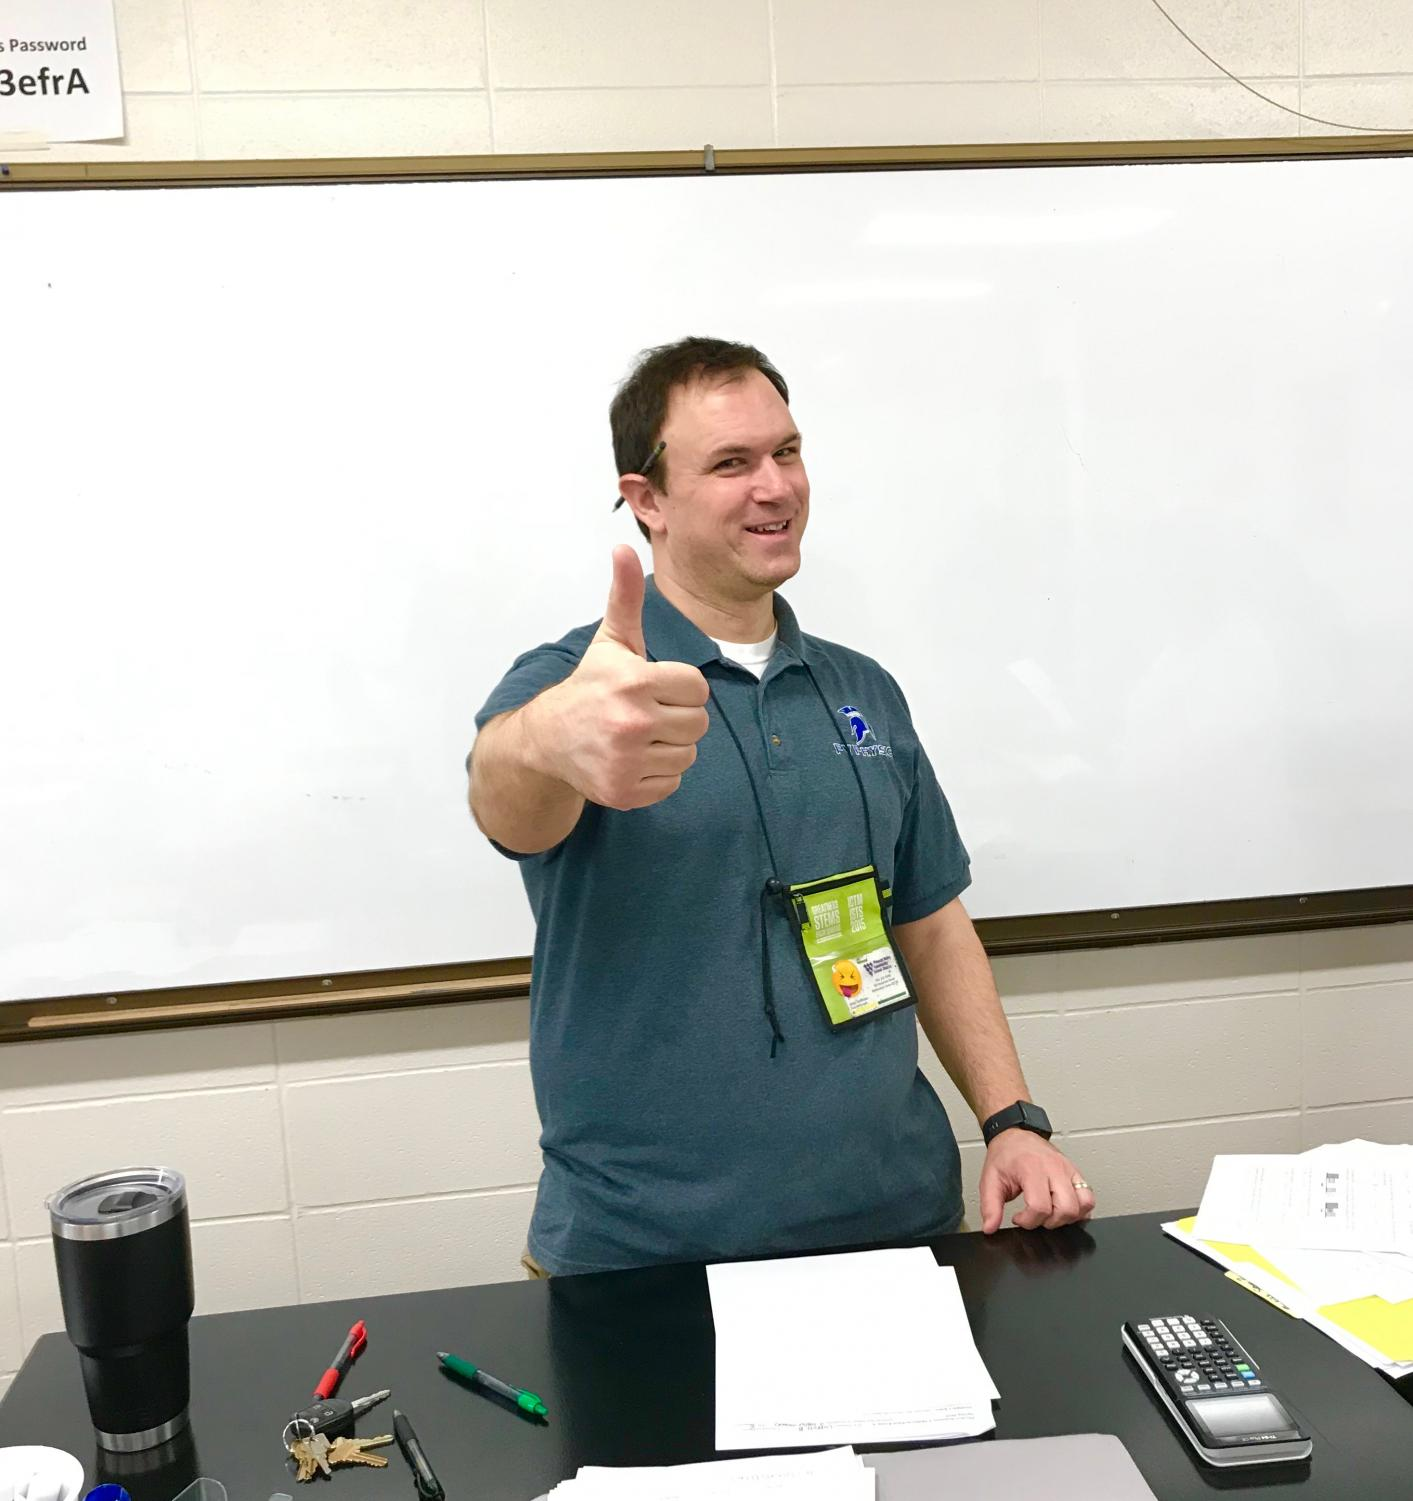 Mr. Hoffman giving a thumbs up after handing out his midterm final.